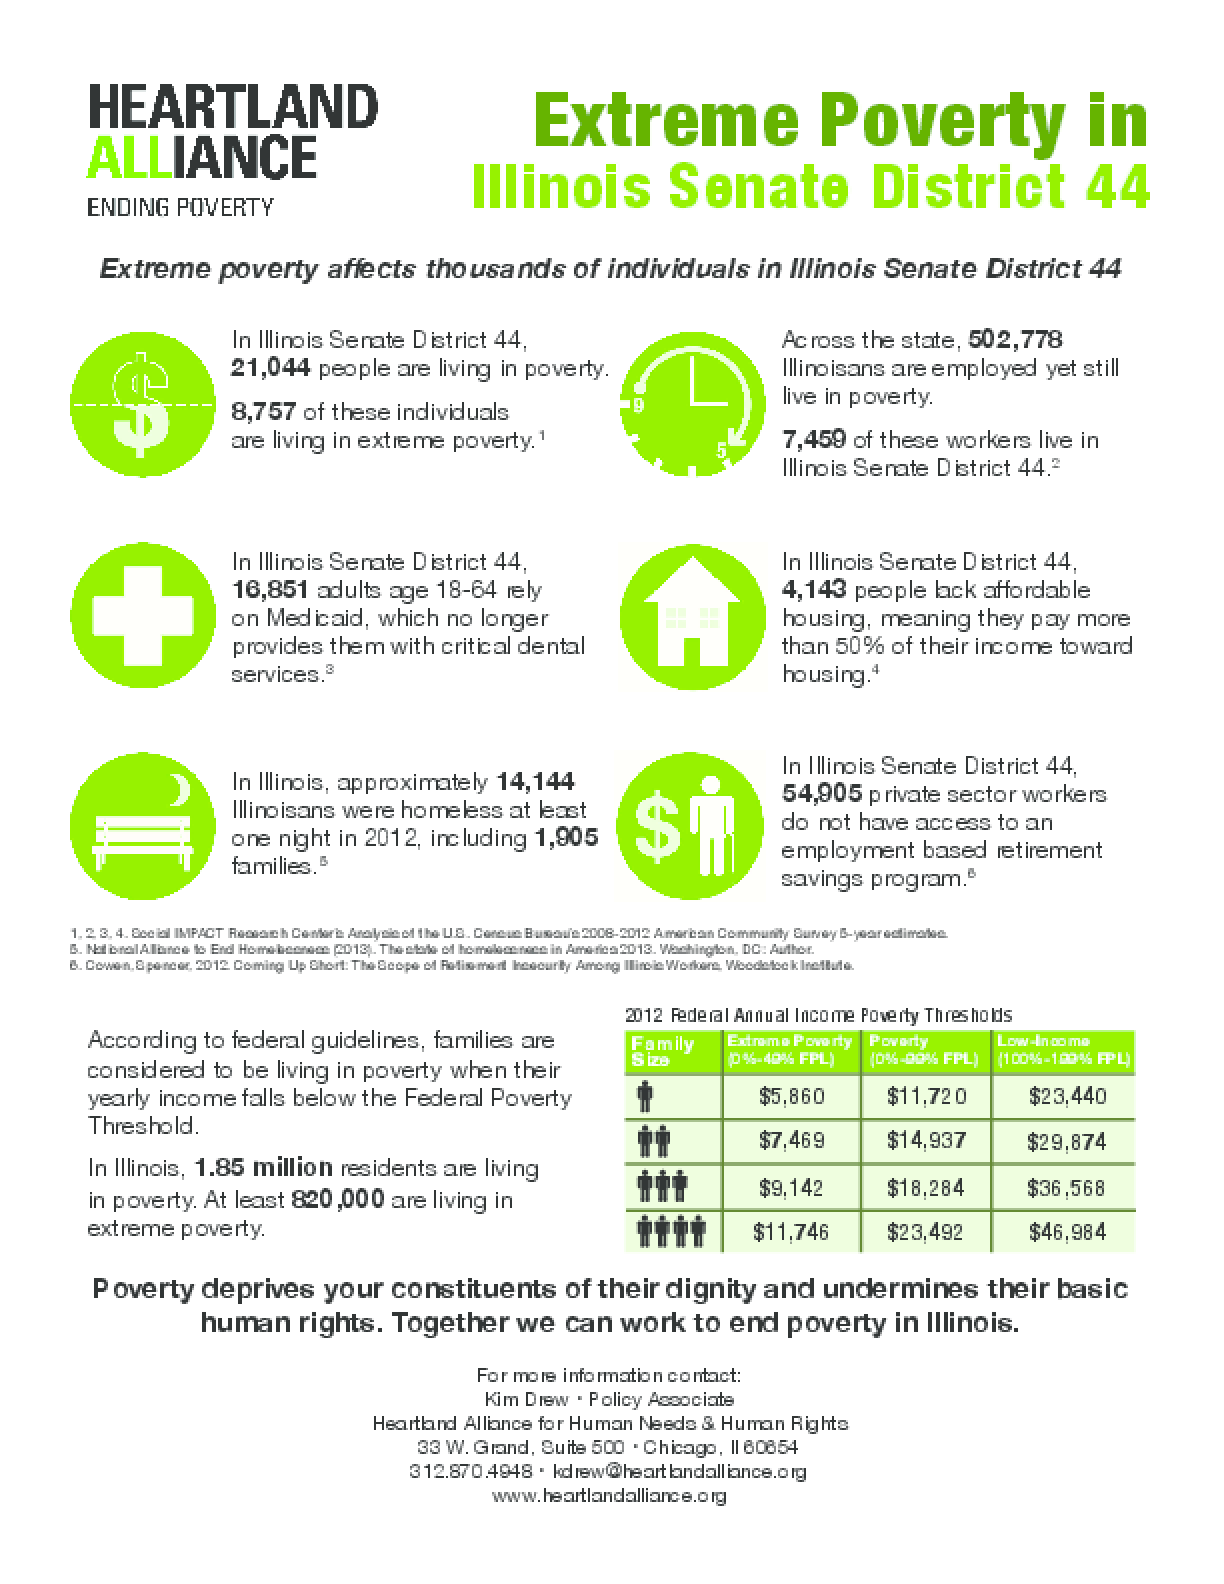 Poverty Fact Sheet for Illinois Senate District 44